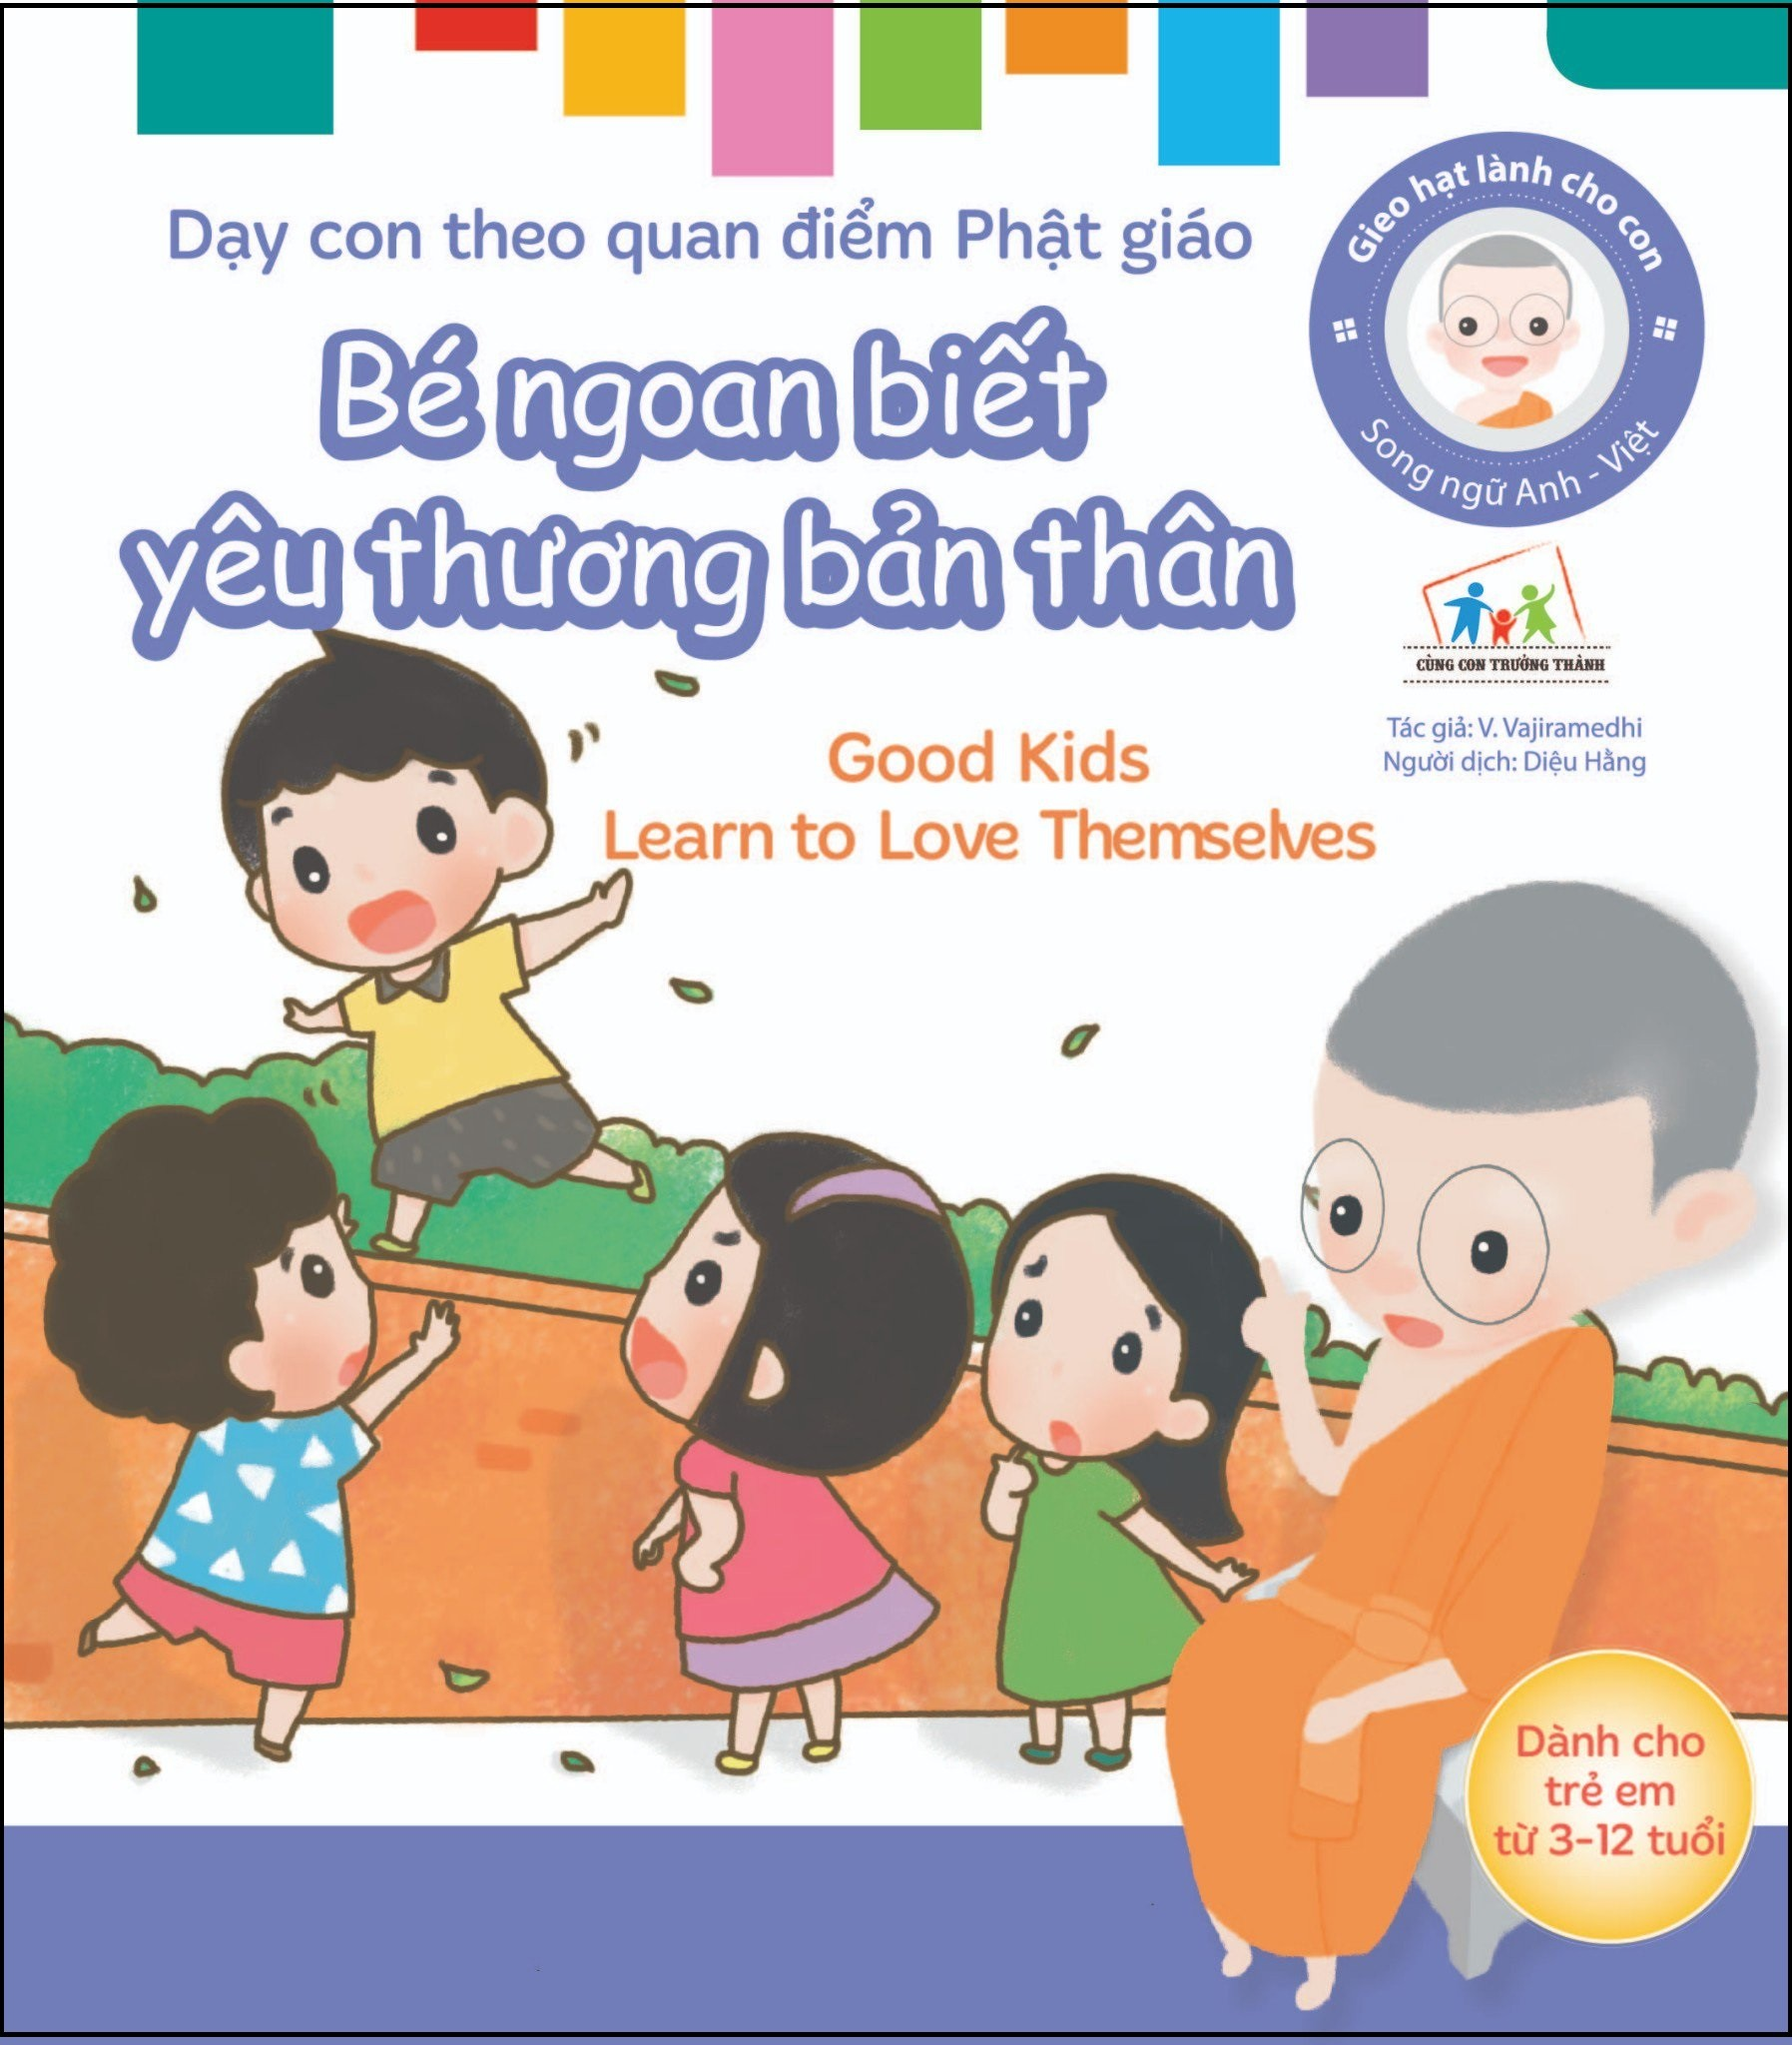 gieo hat lanh cho con - day con theo quan diem phat giao - good kids learn to love themselves - be ngoan biet yeu thuong ban than (song ngu anh viet)